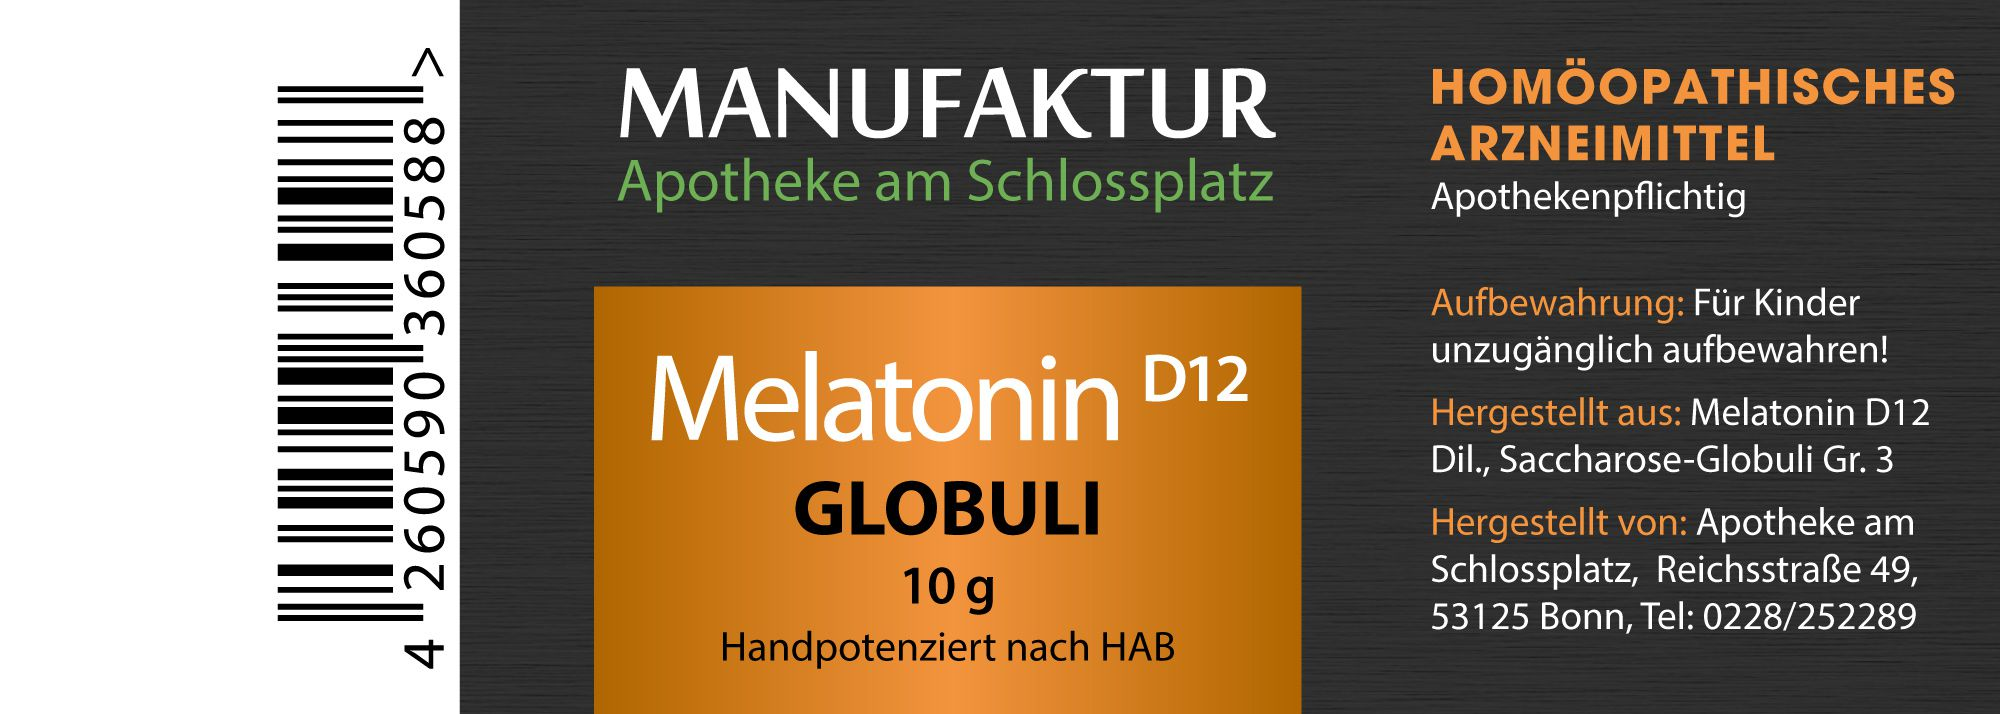 Melatonin D12 Globuli